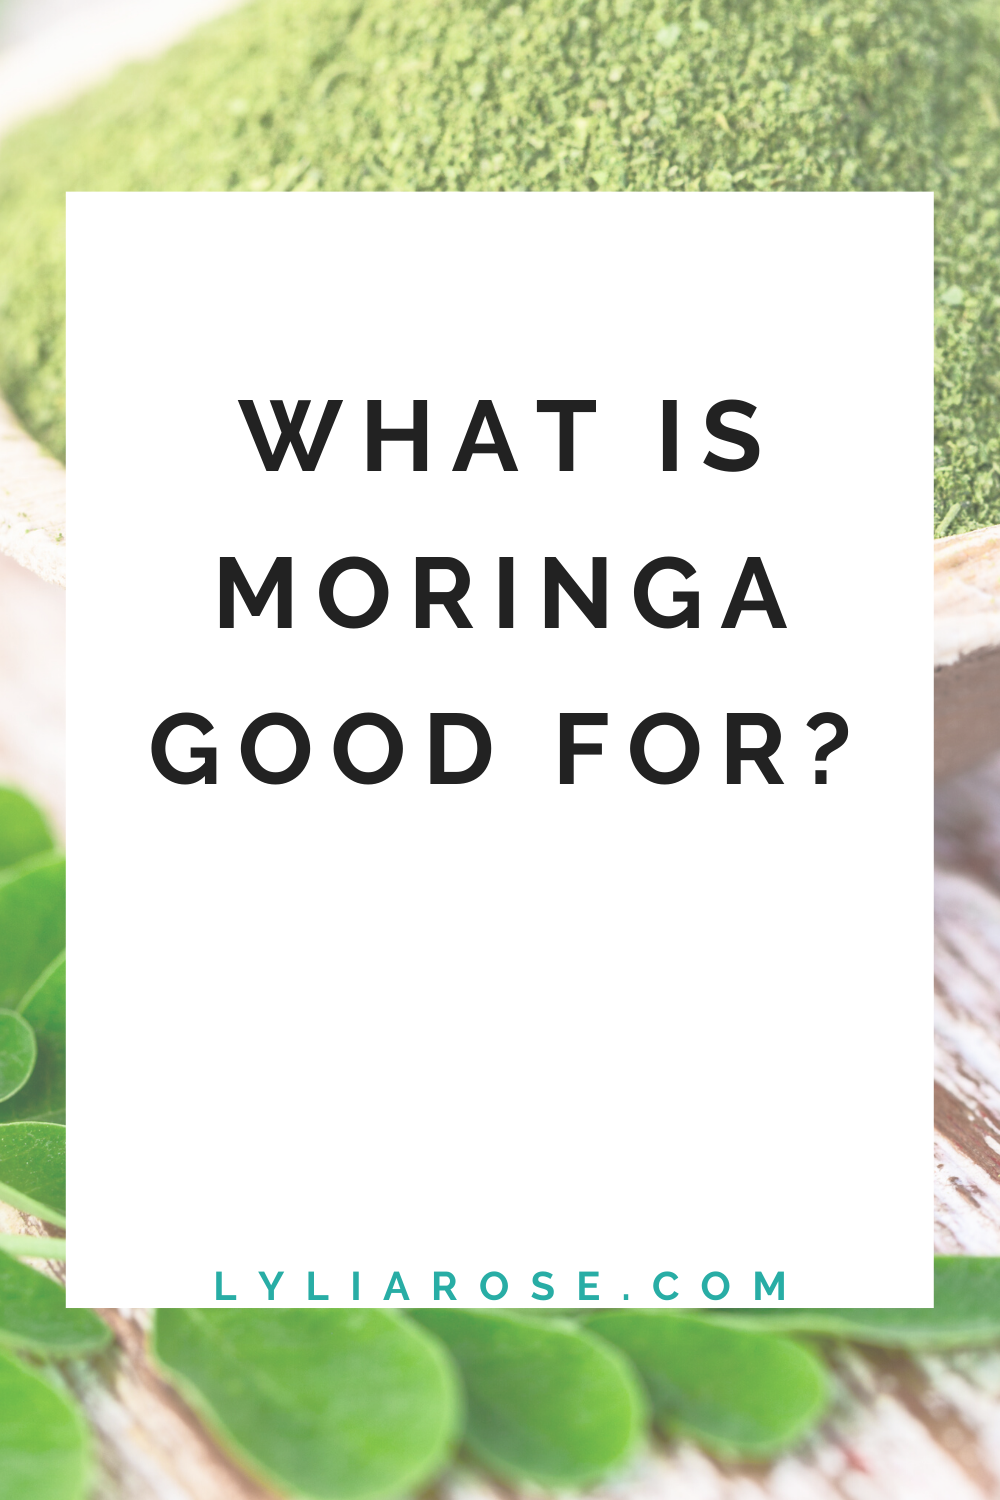 What is moringa good for_